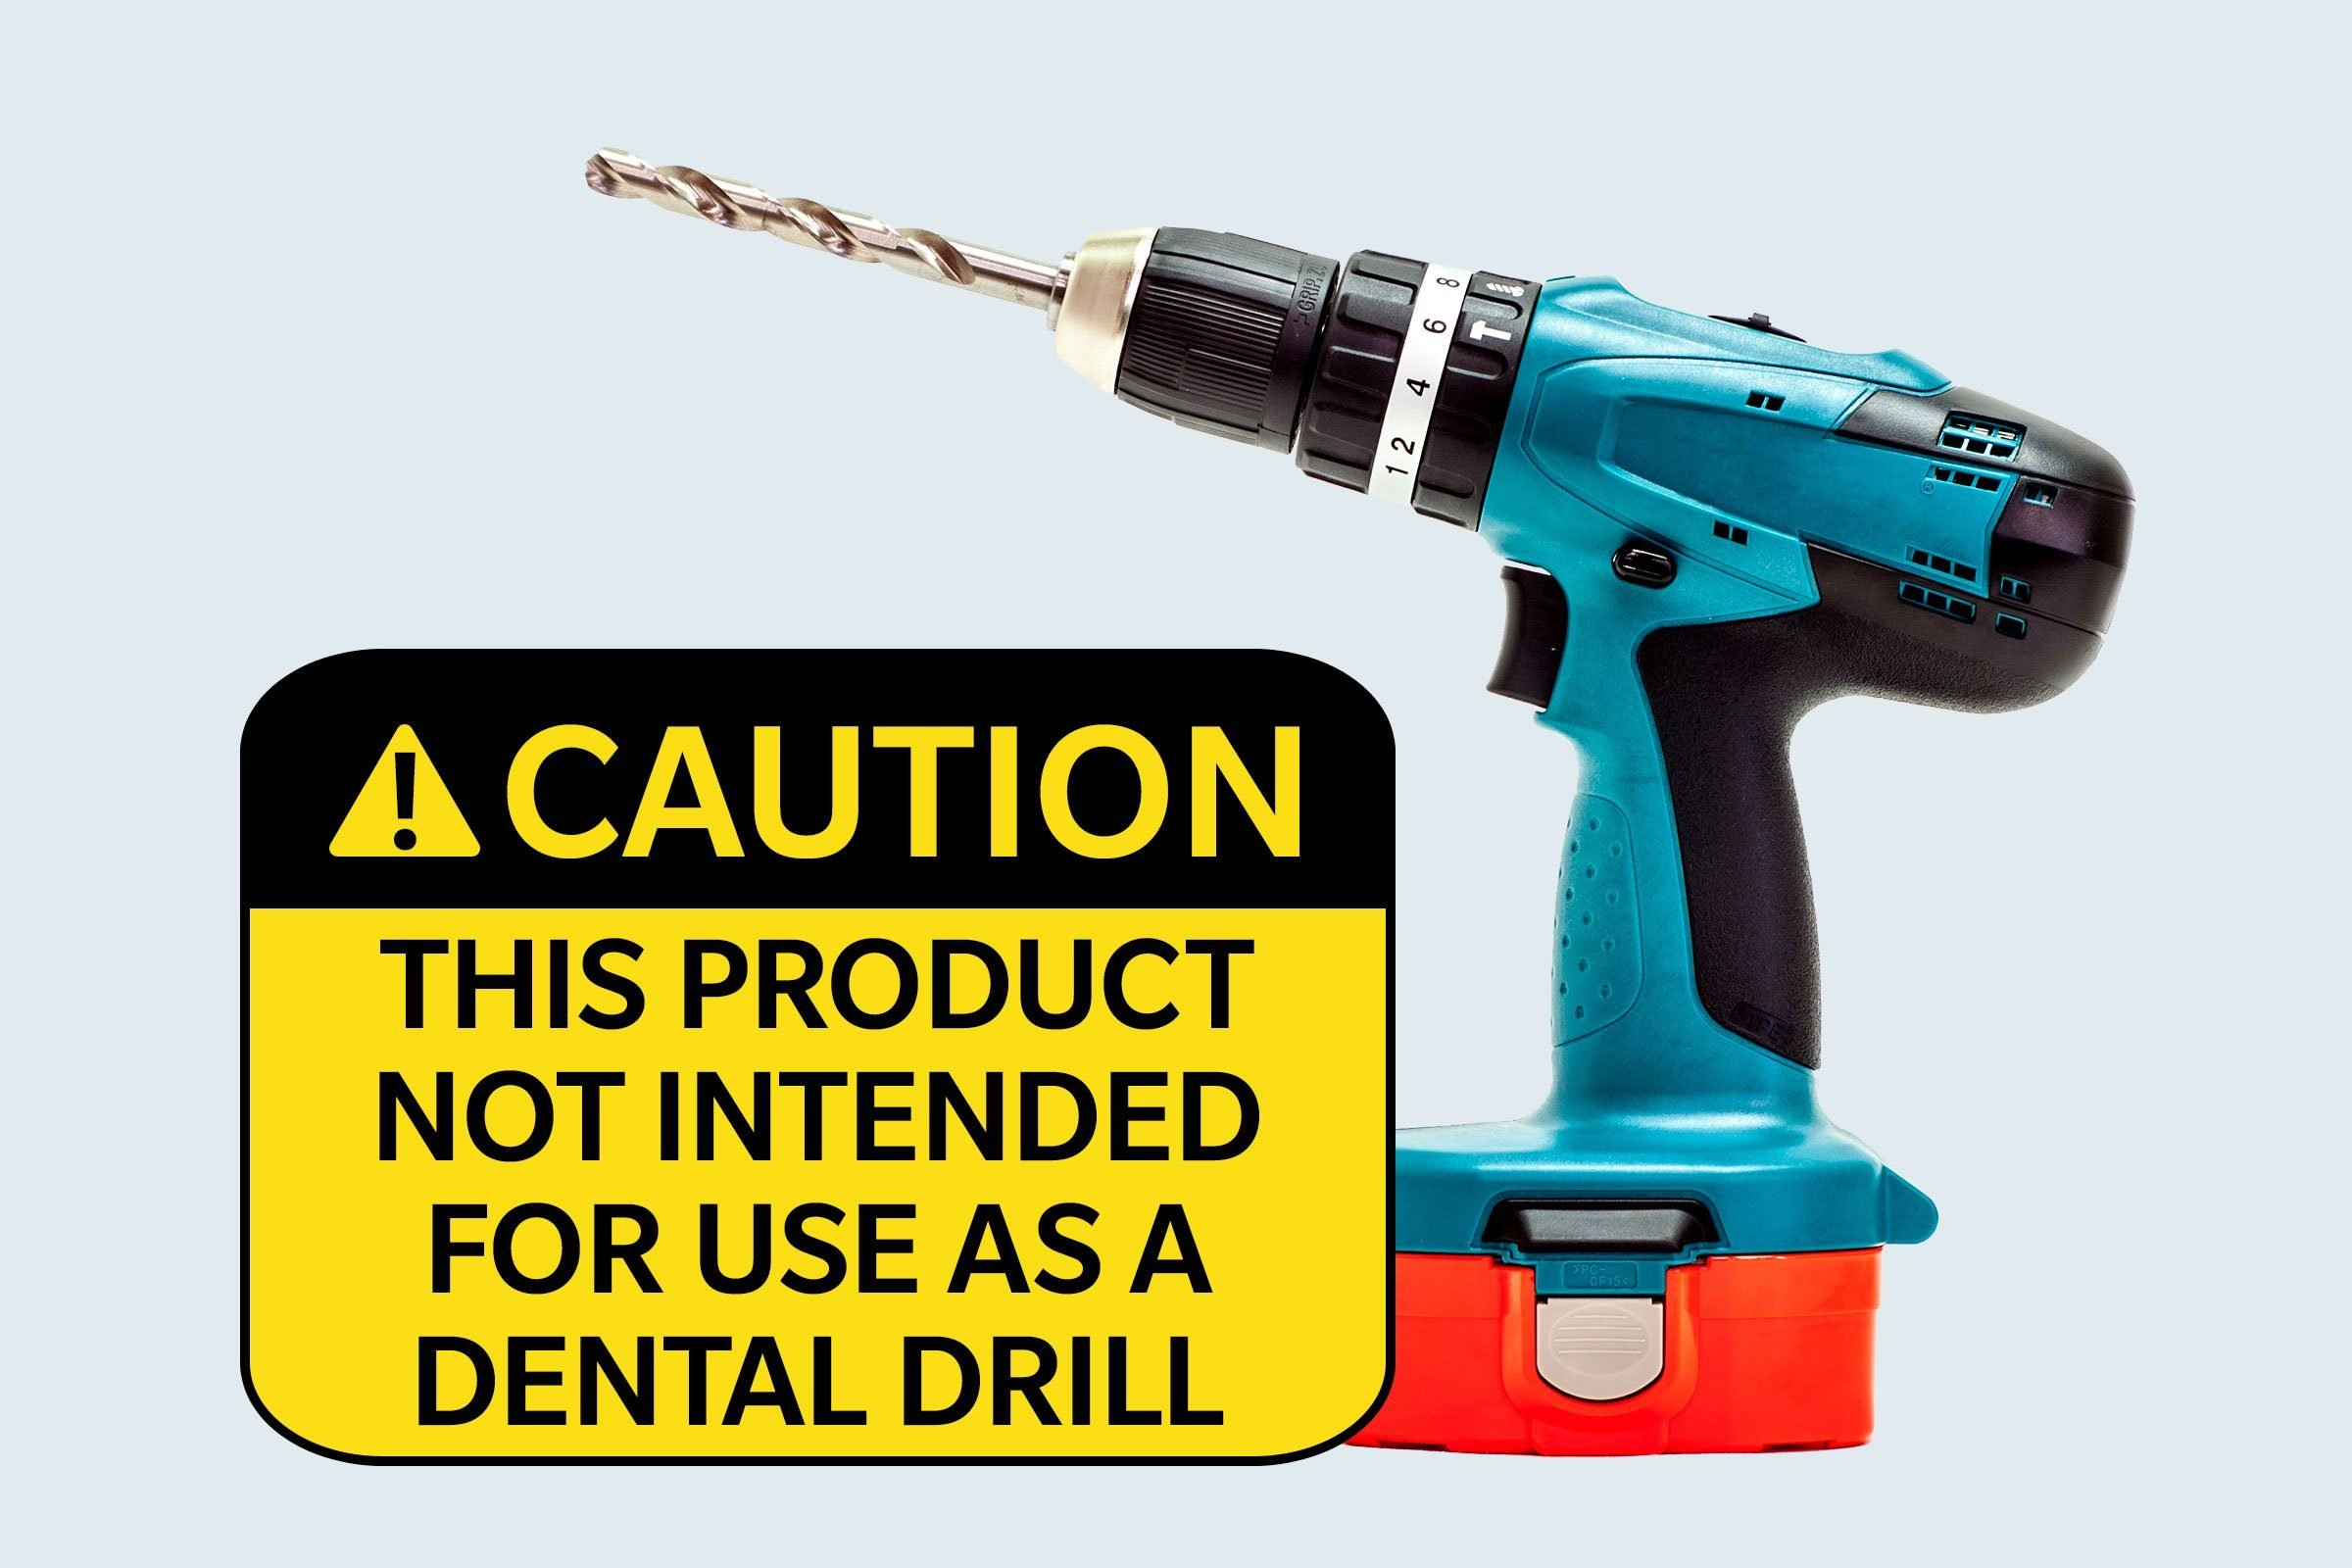 drill. caution: this product not intended for use as a dental drill